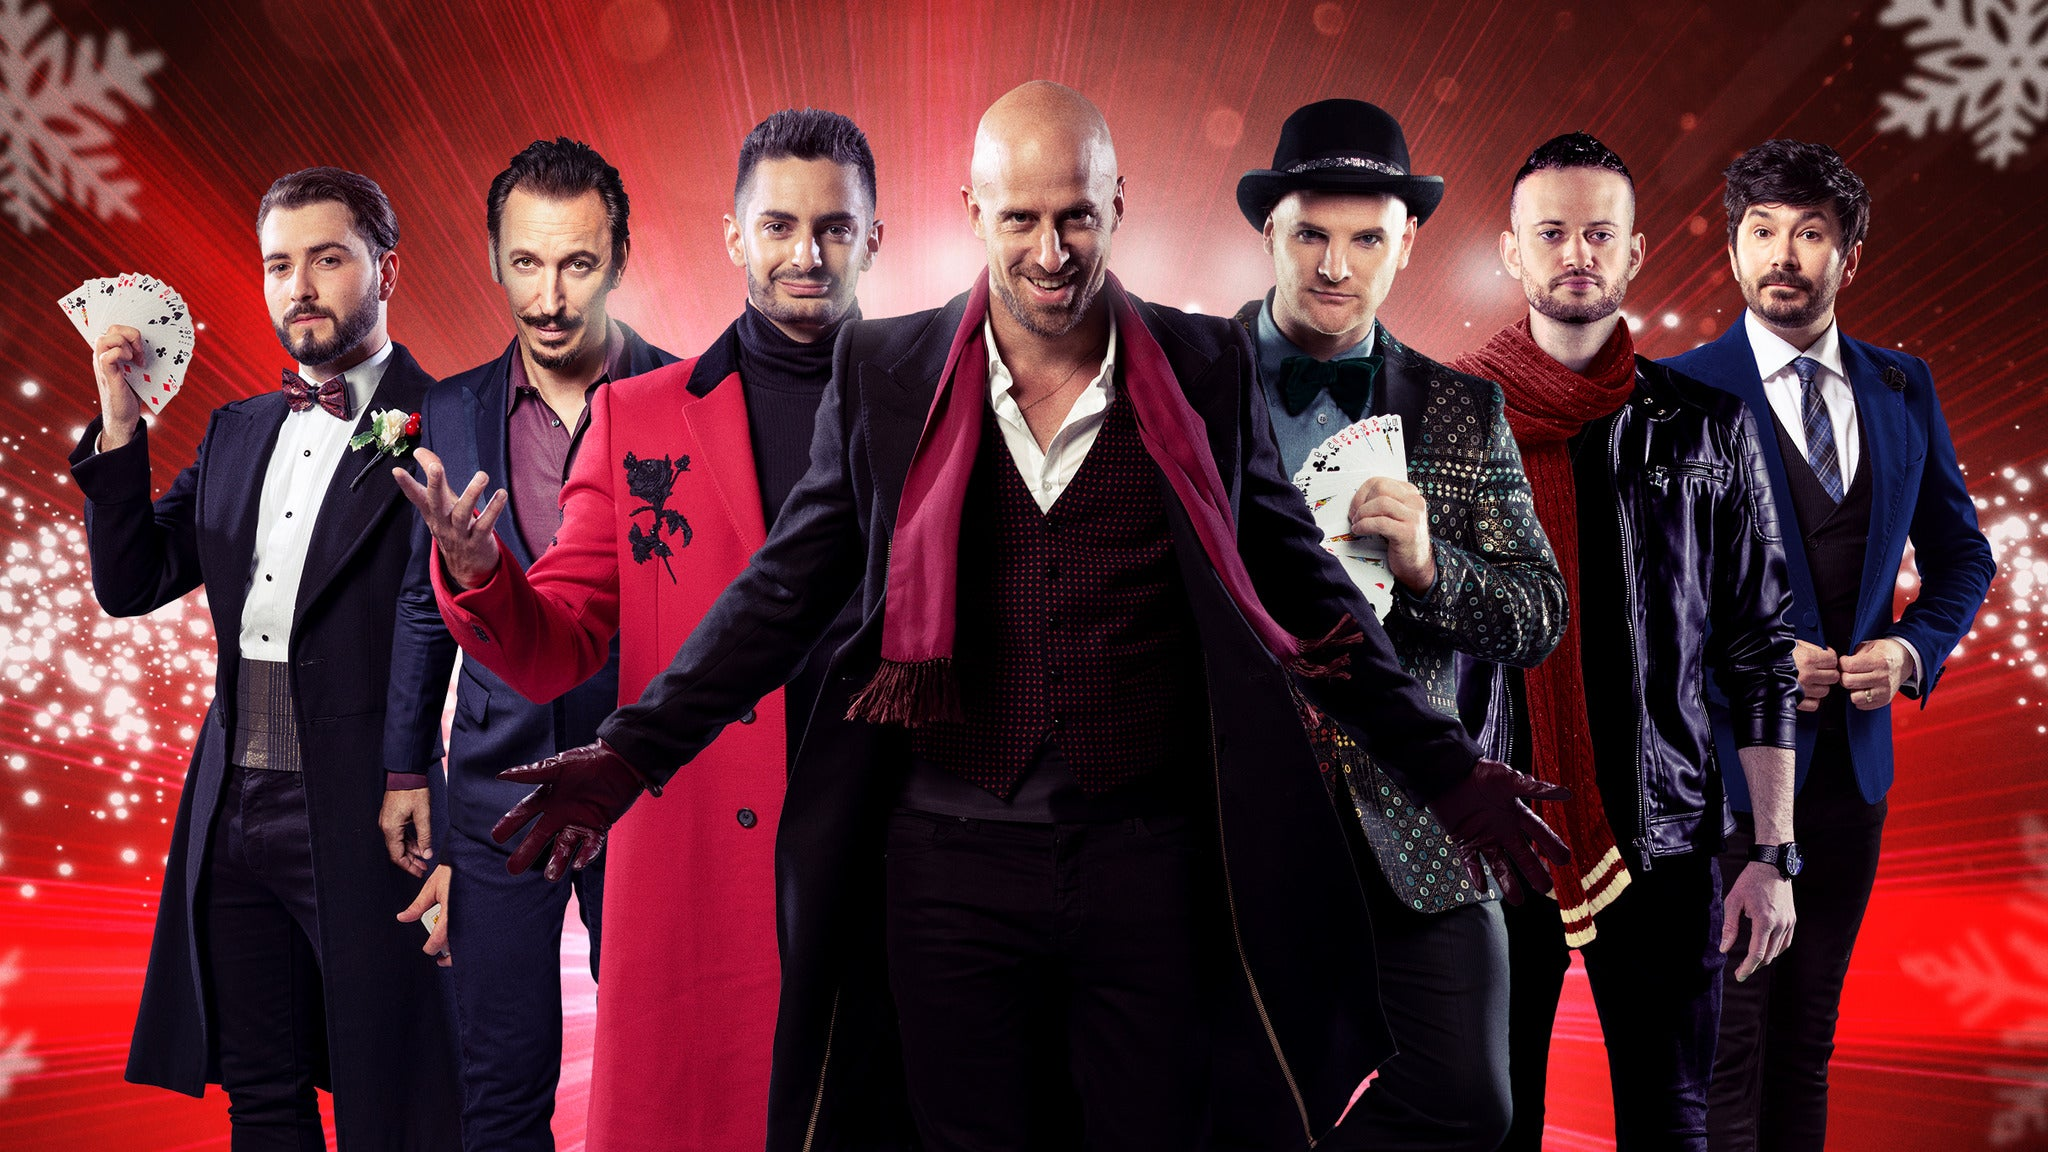 The Illusionists - Magic of the Holidays (Touring)